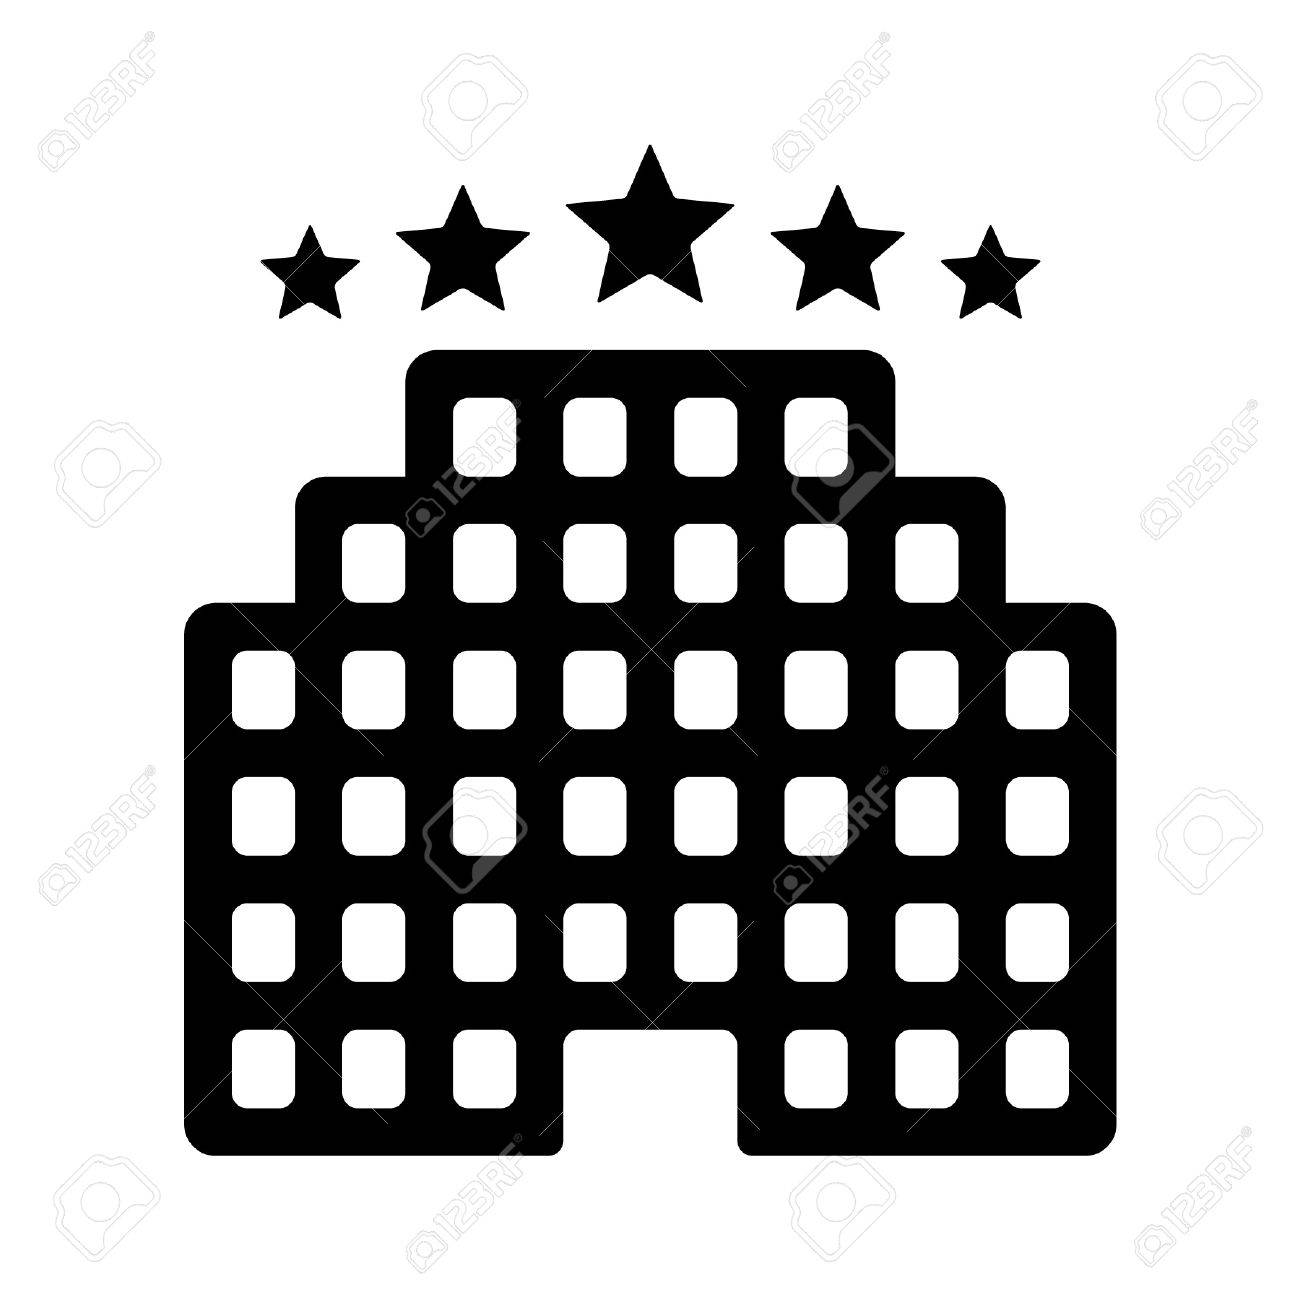 Five Star Luxury Hotel Flat Icon For Apps And Websites Stock Vector